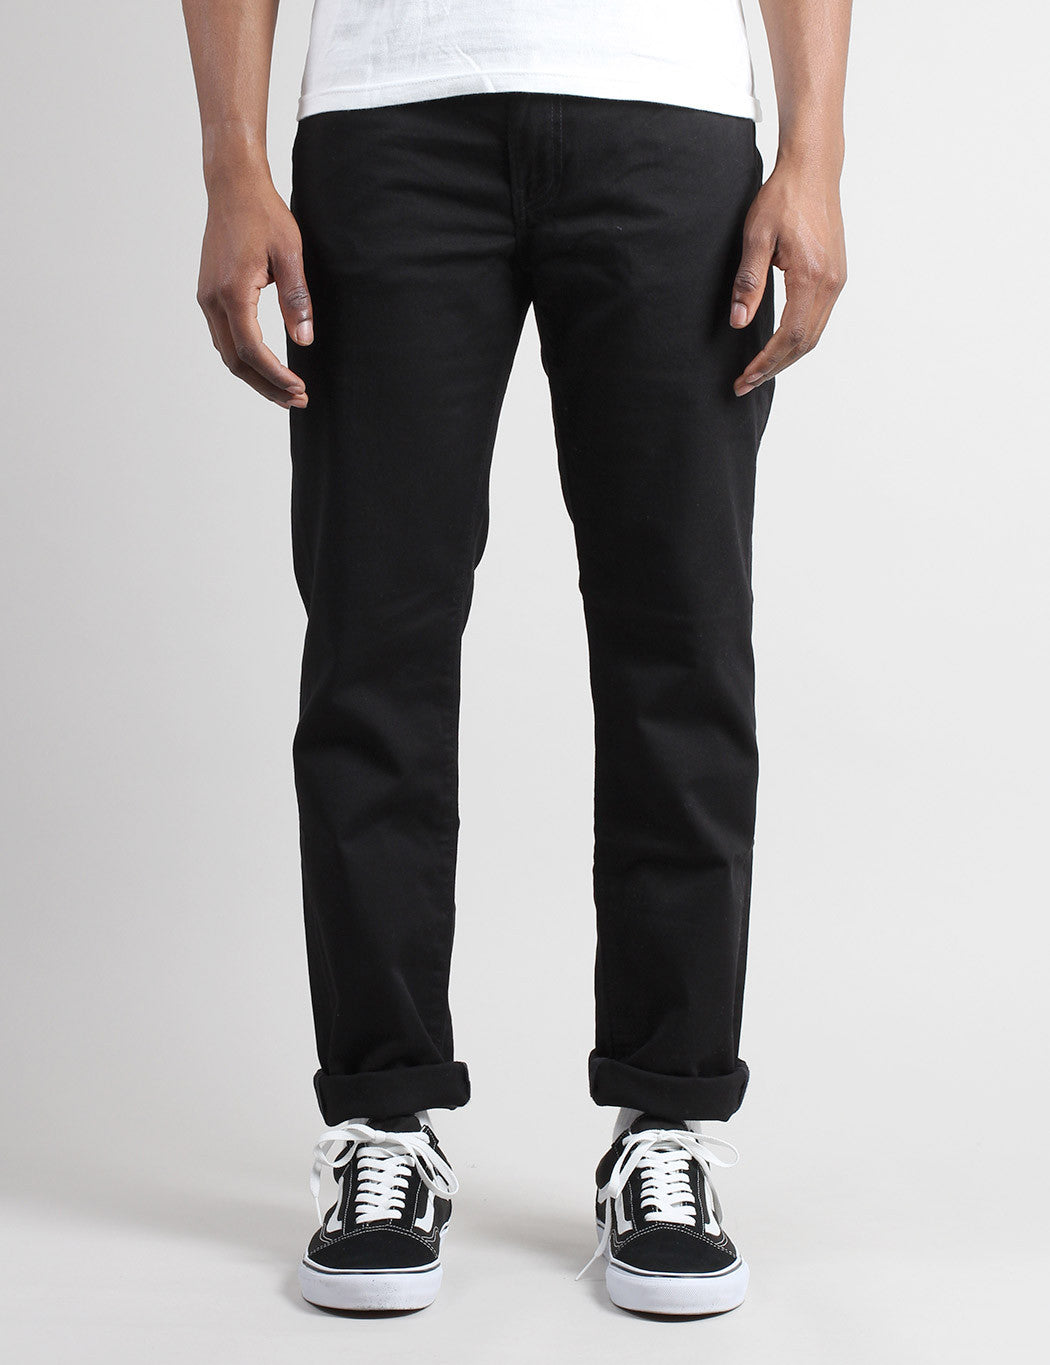 Levis 511 Slim Jeans - Black Moonshine